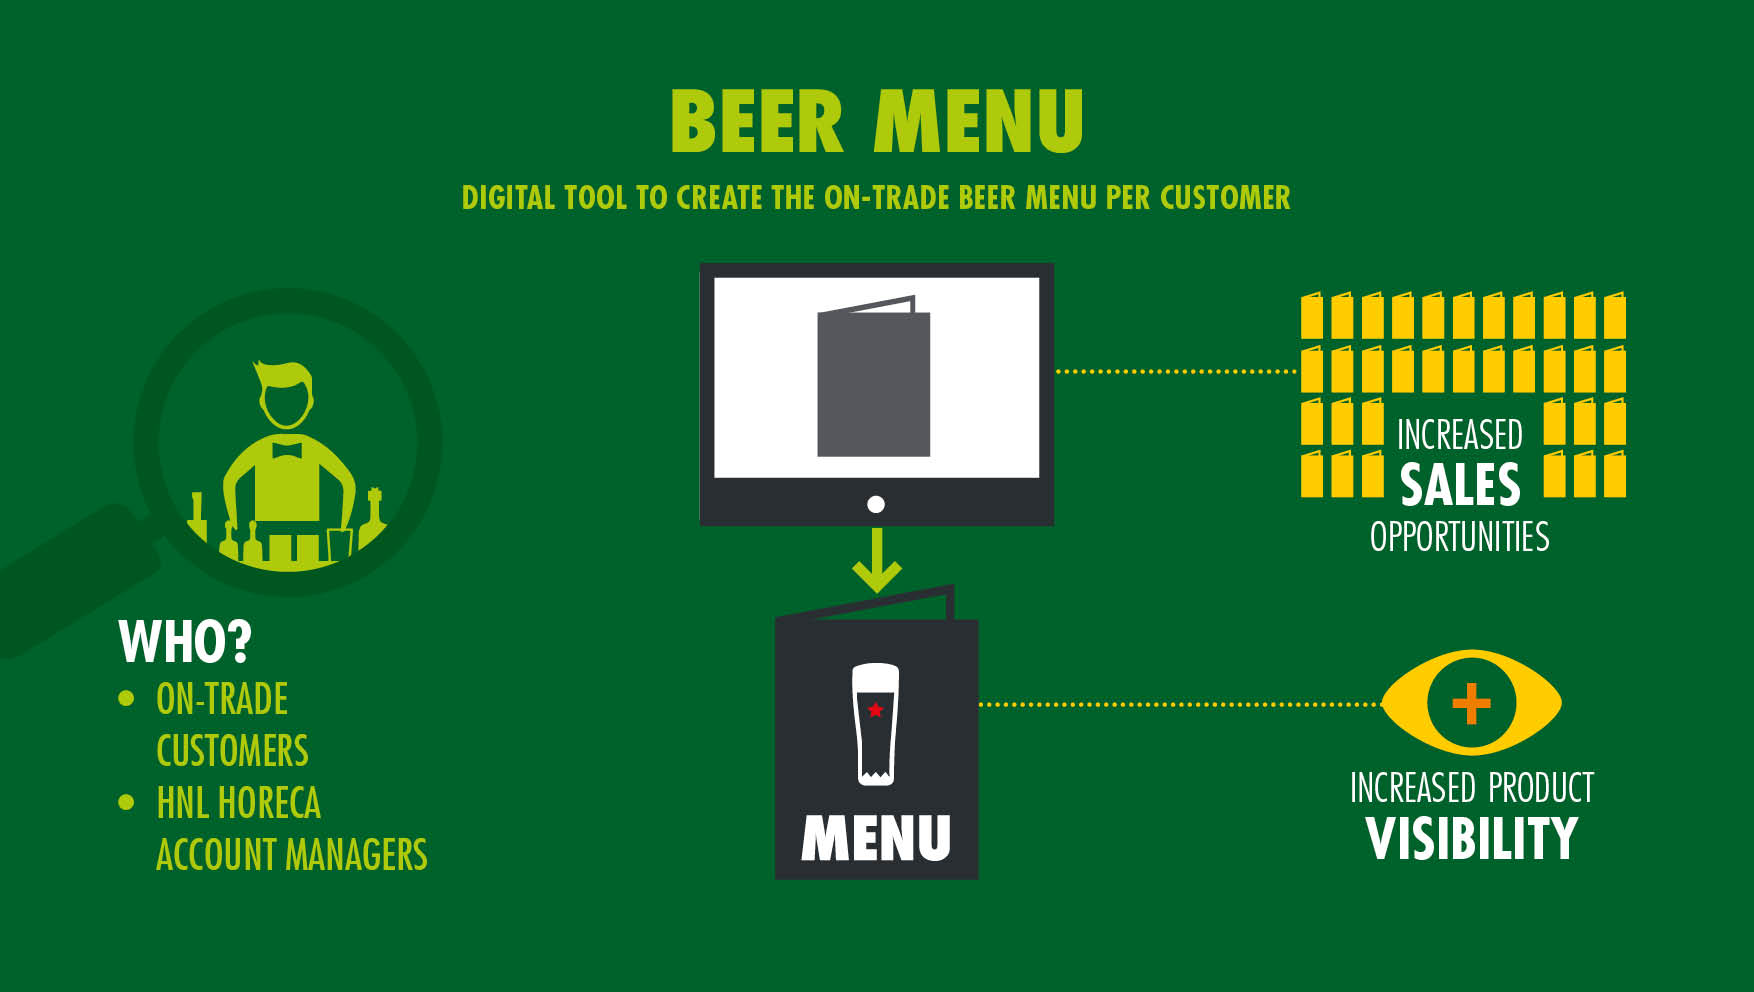 slides-heineken---team-digital-nl---year-20158.jpg